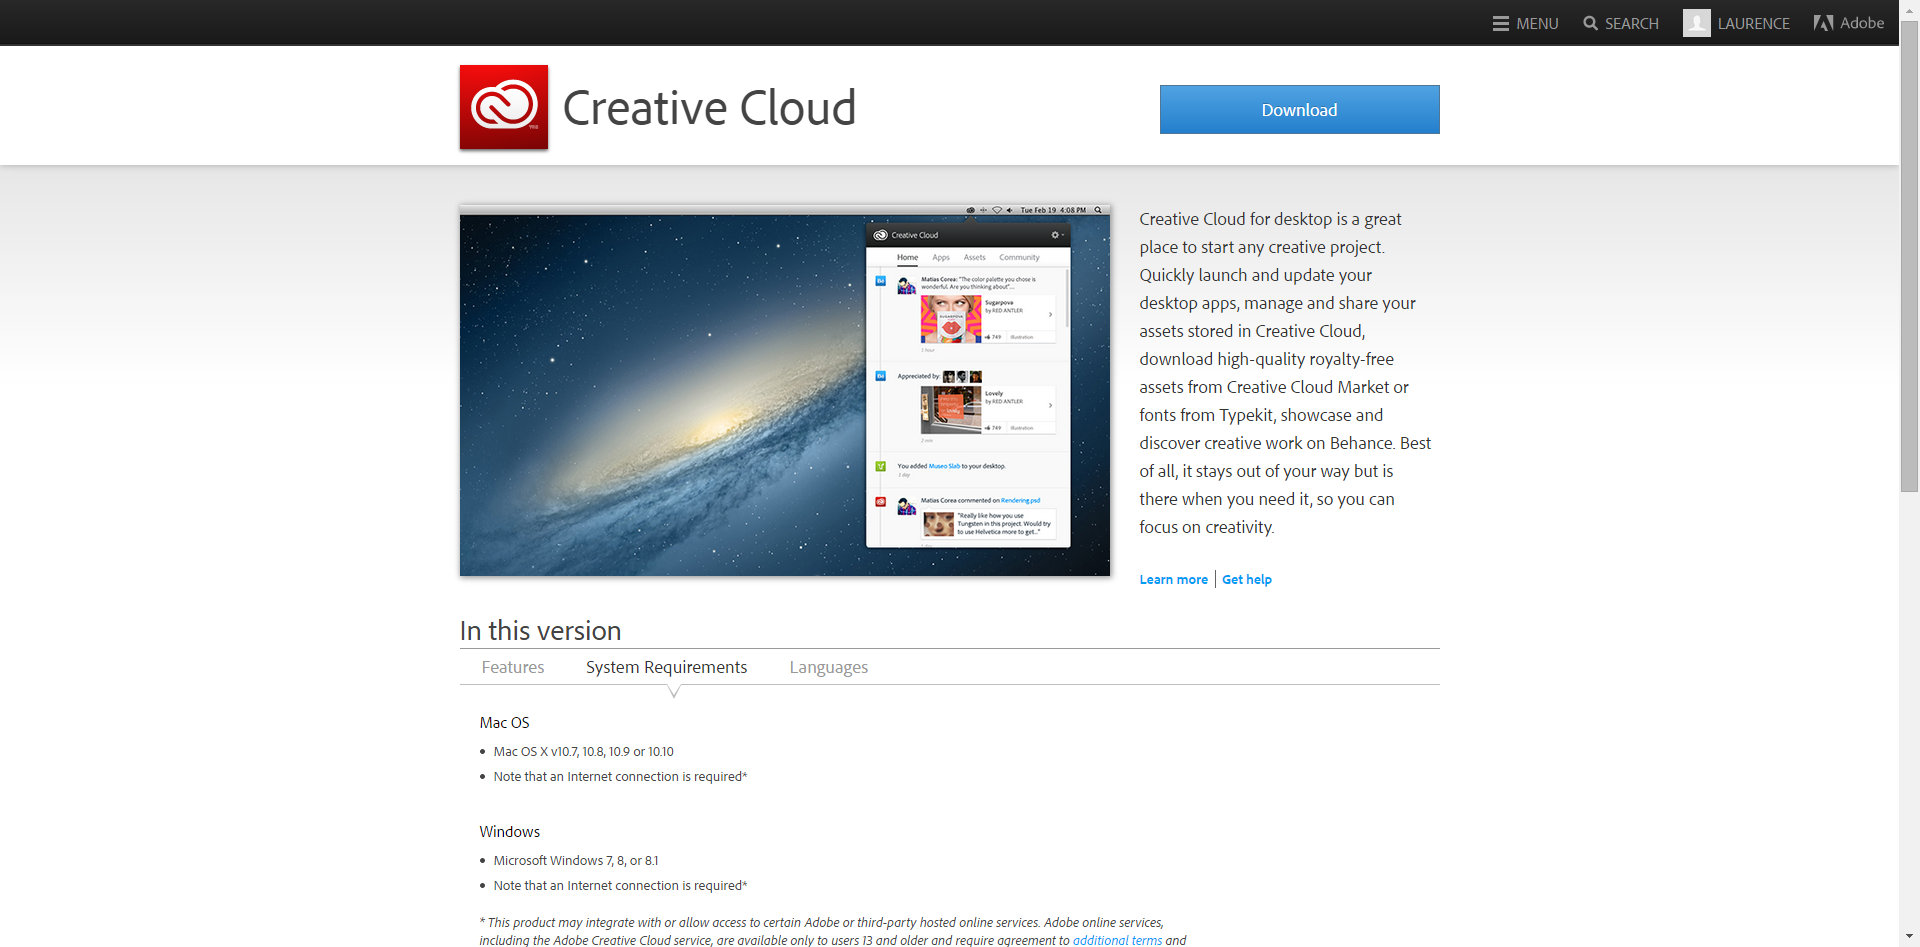 creative cloud app screenshot